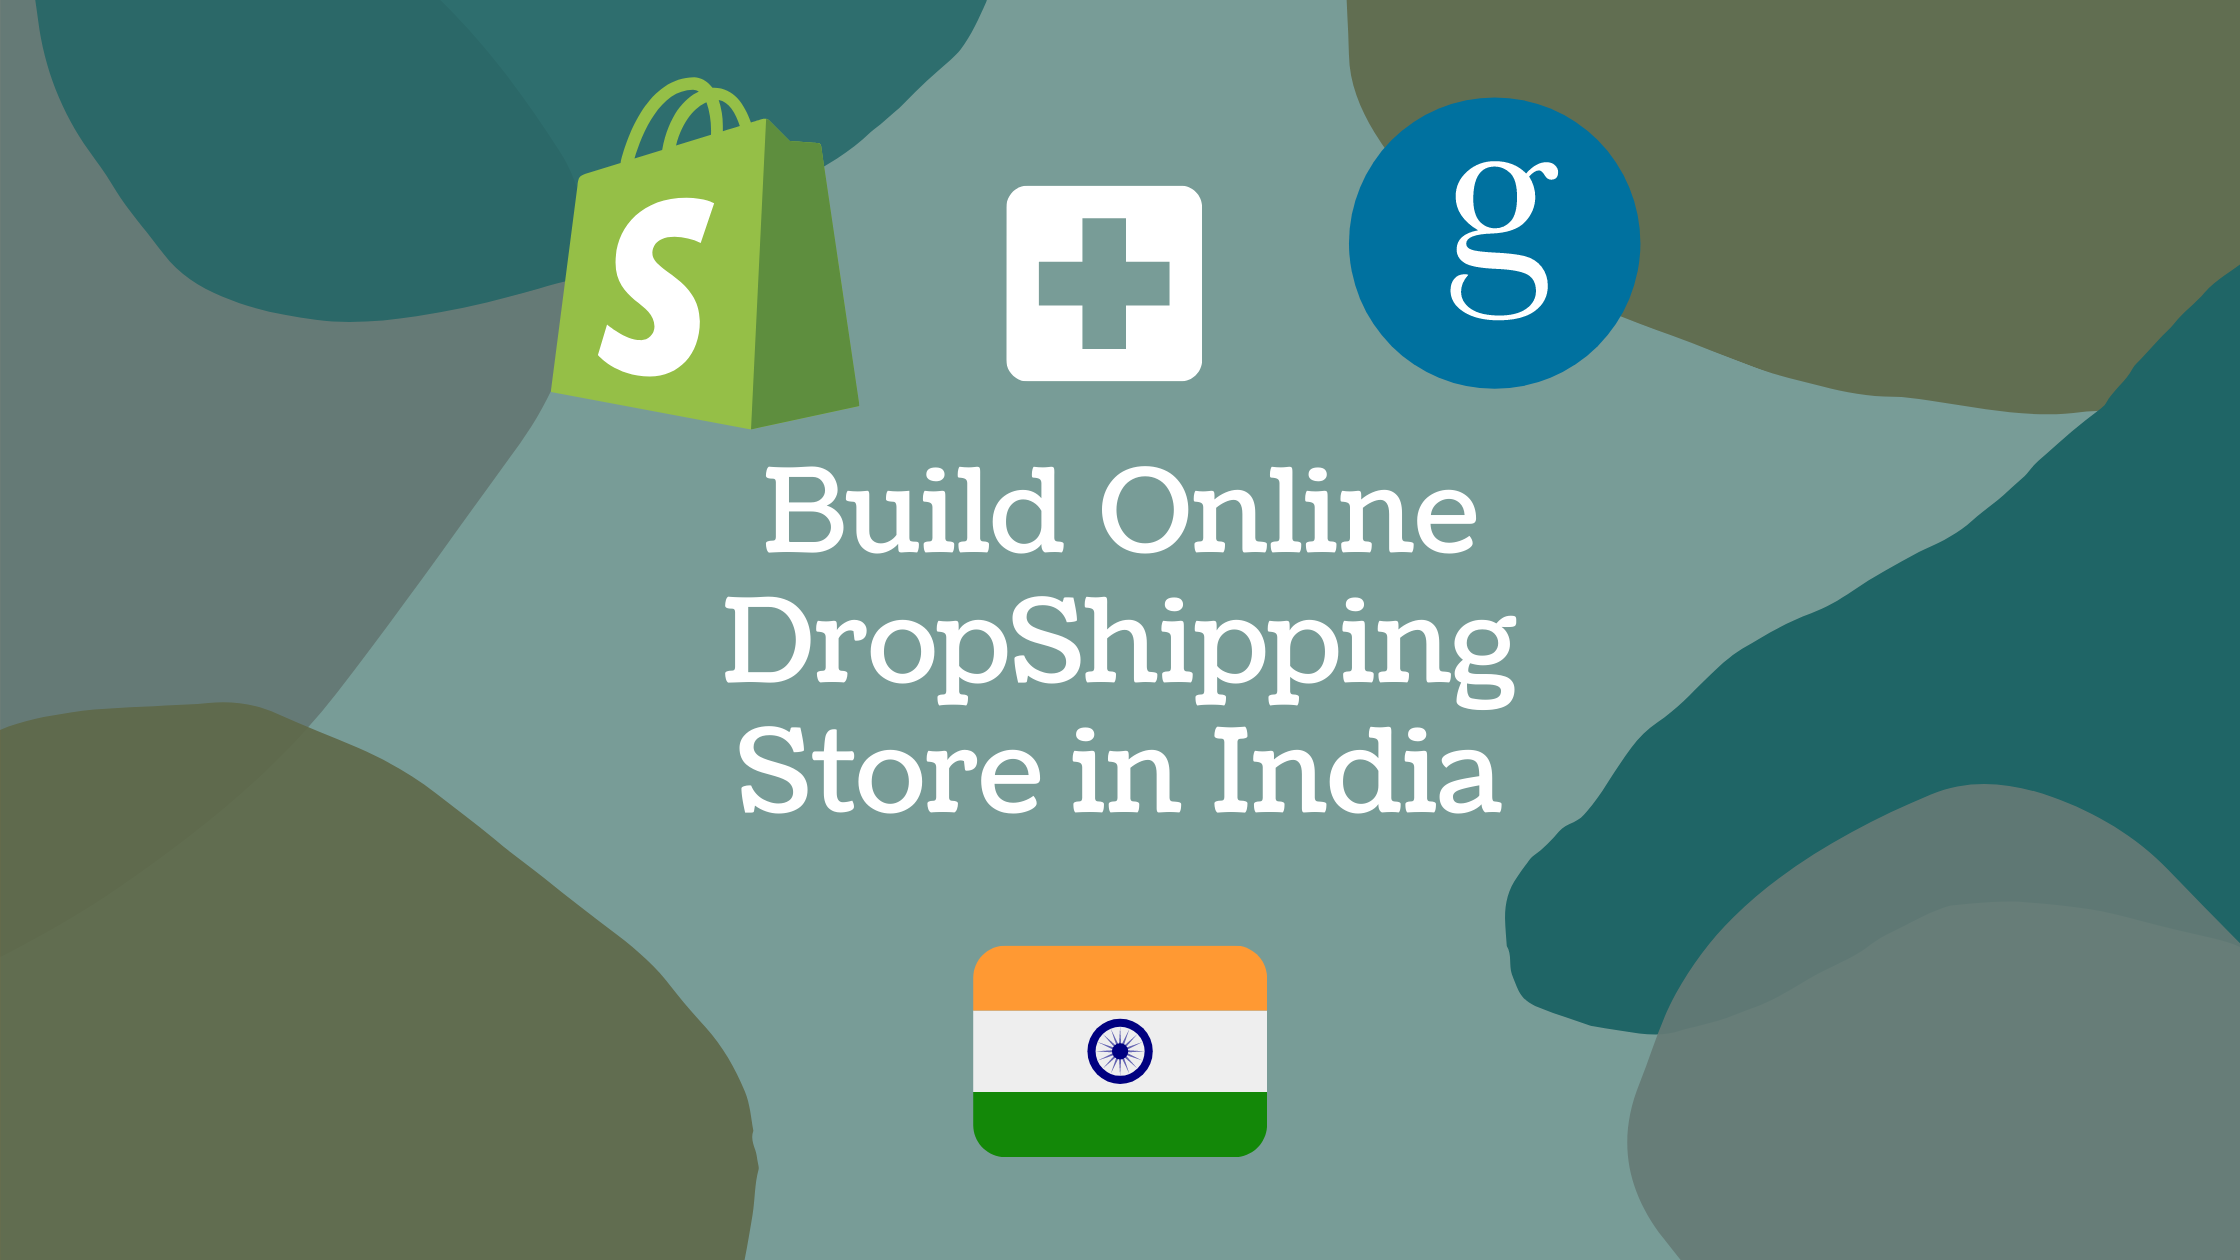 Launch your dropshipping store with Glowroad and Shopify